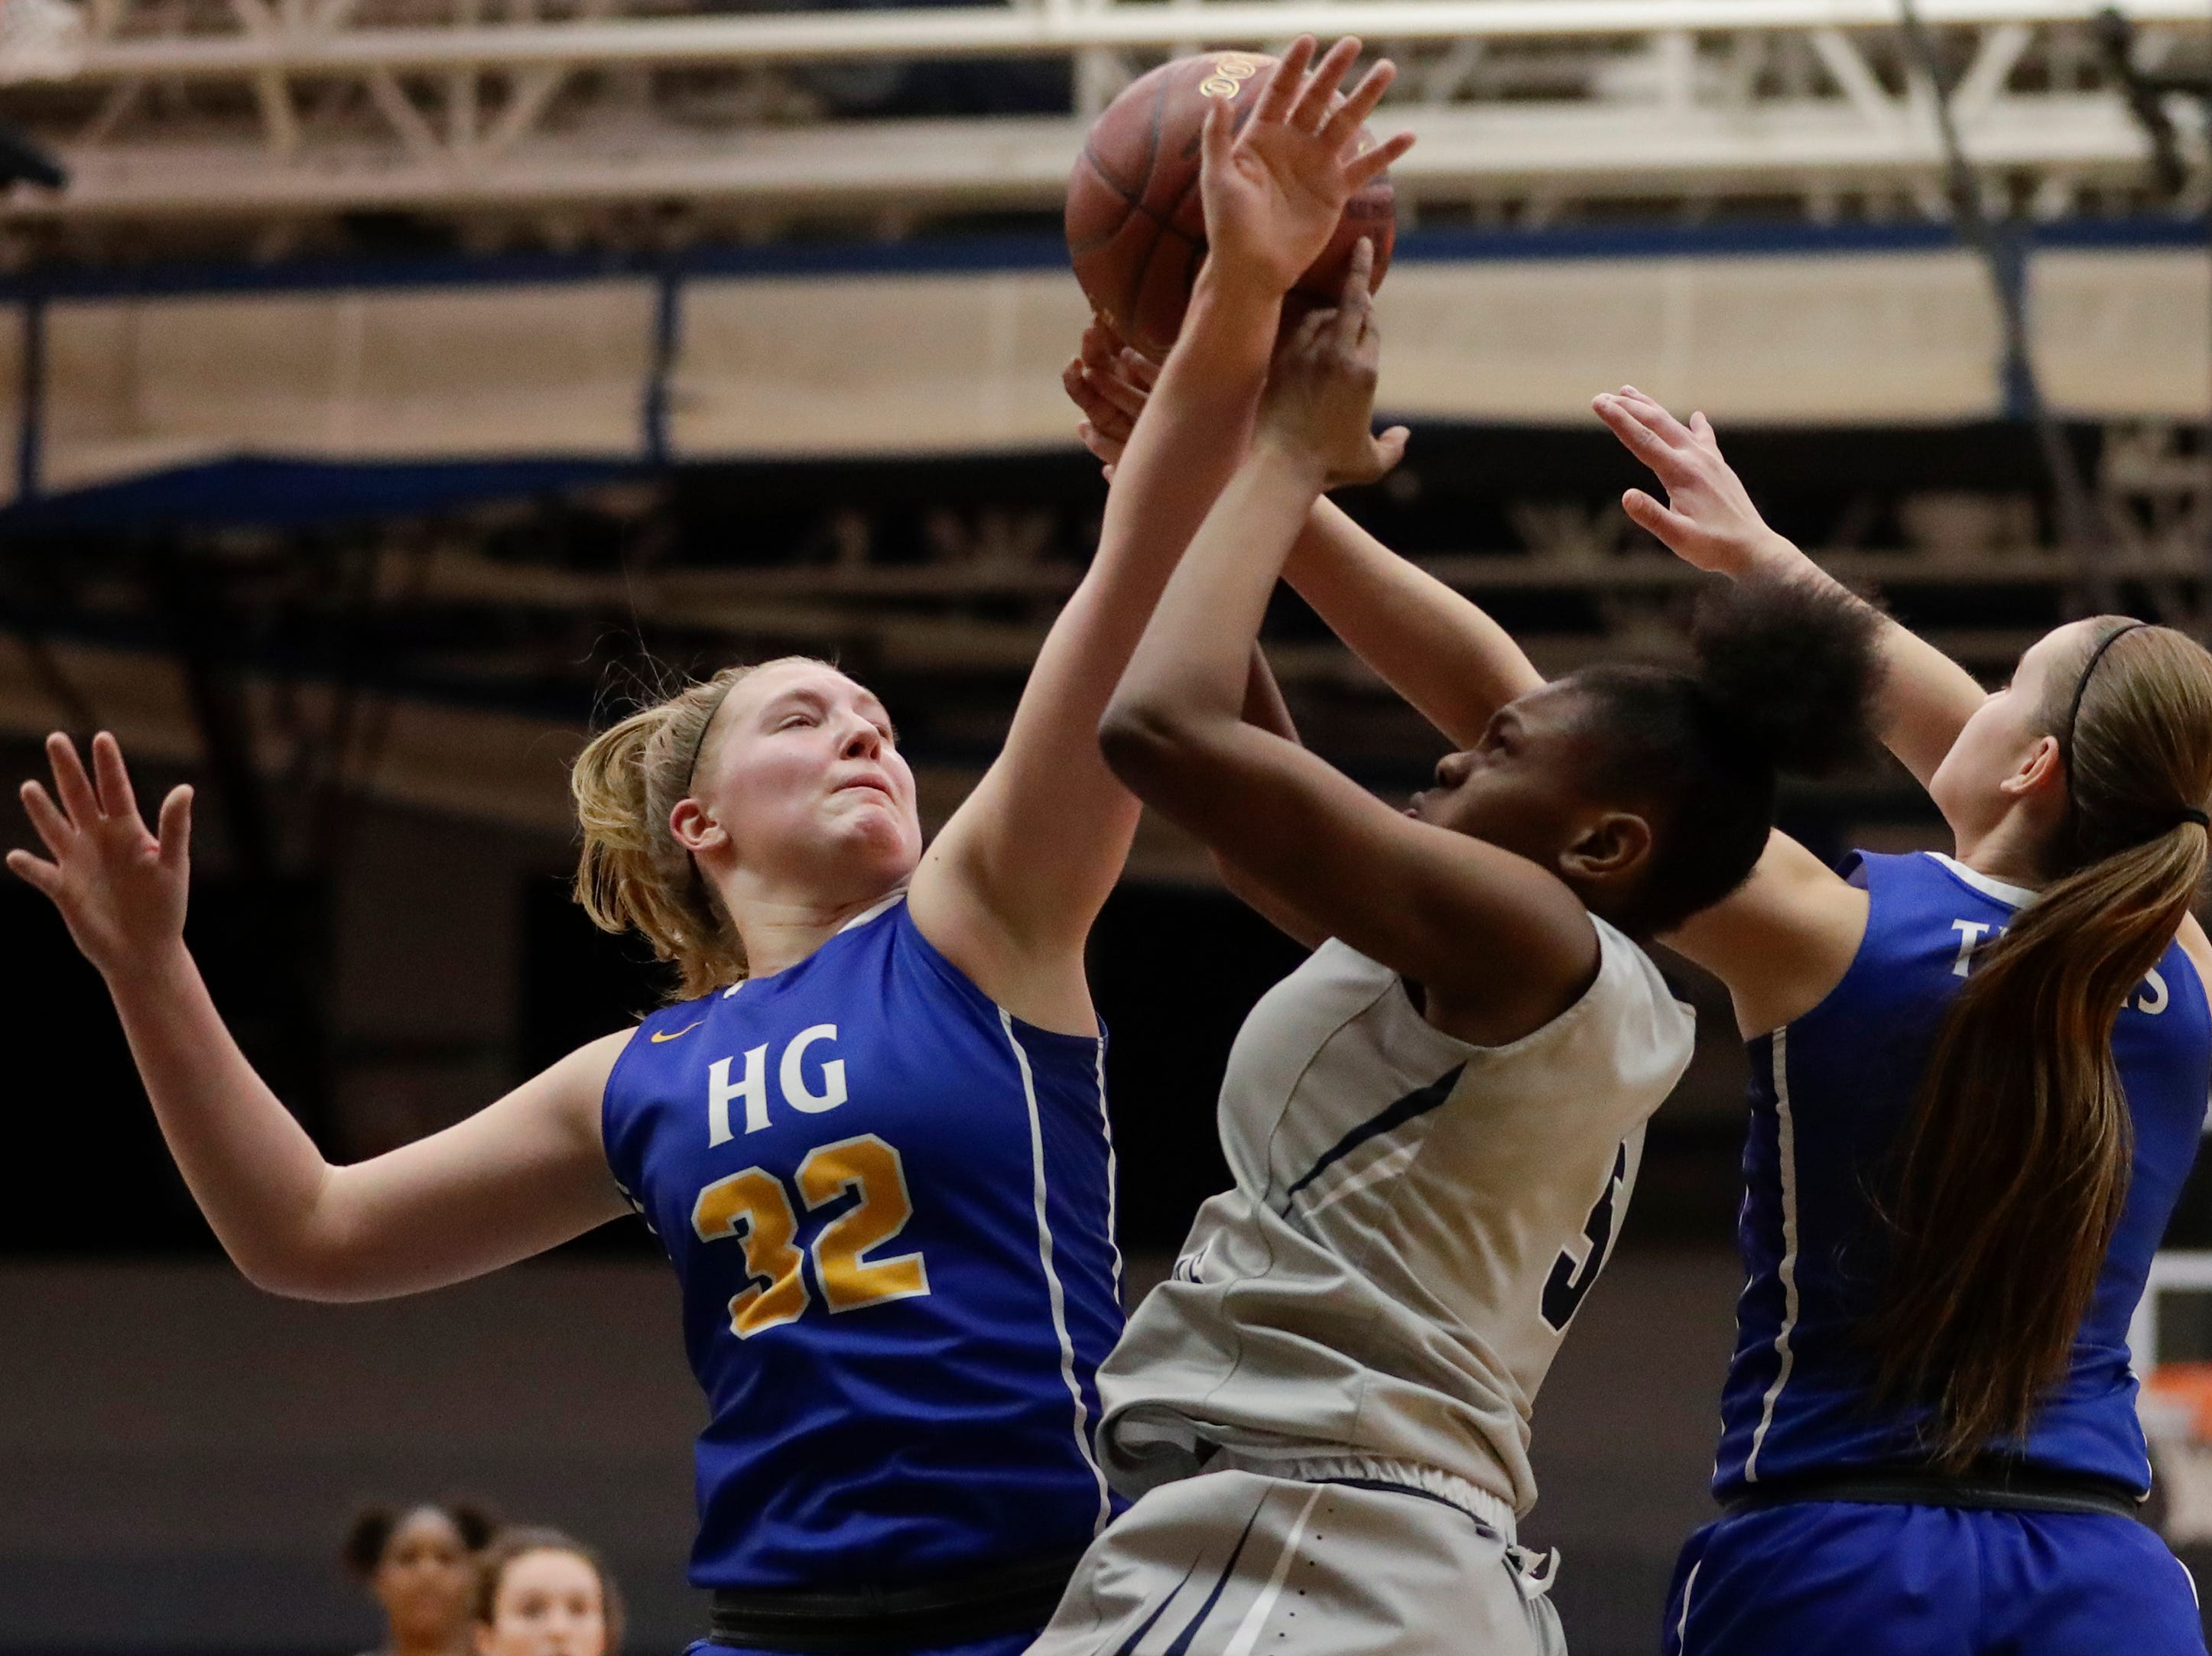 Howards Grove's Madalynn Near (32) battles Milwaukee Academy of Science's Jalisa Batemon (5) for a rebound during a WIAA Division 4 sectional championship game at Sheboygan North High School Saturday, March 2, 2019, in Sheboygan, Wis. Joshua Clark/USA TODAY NETWORK-Wisconsin